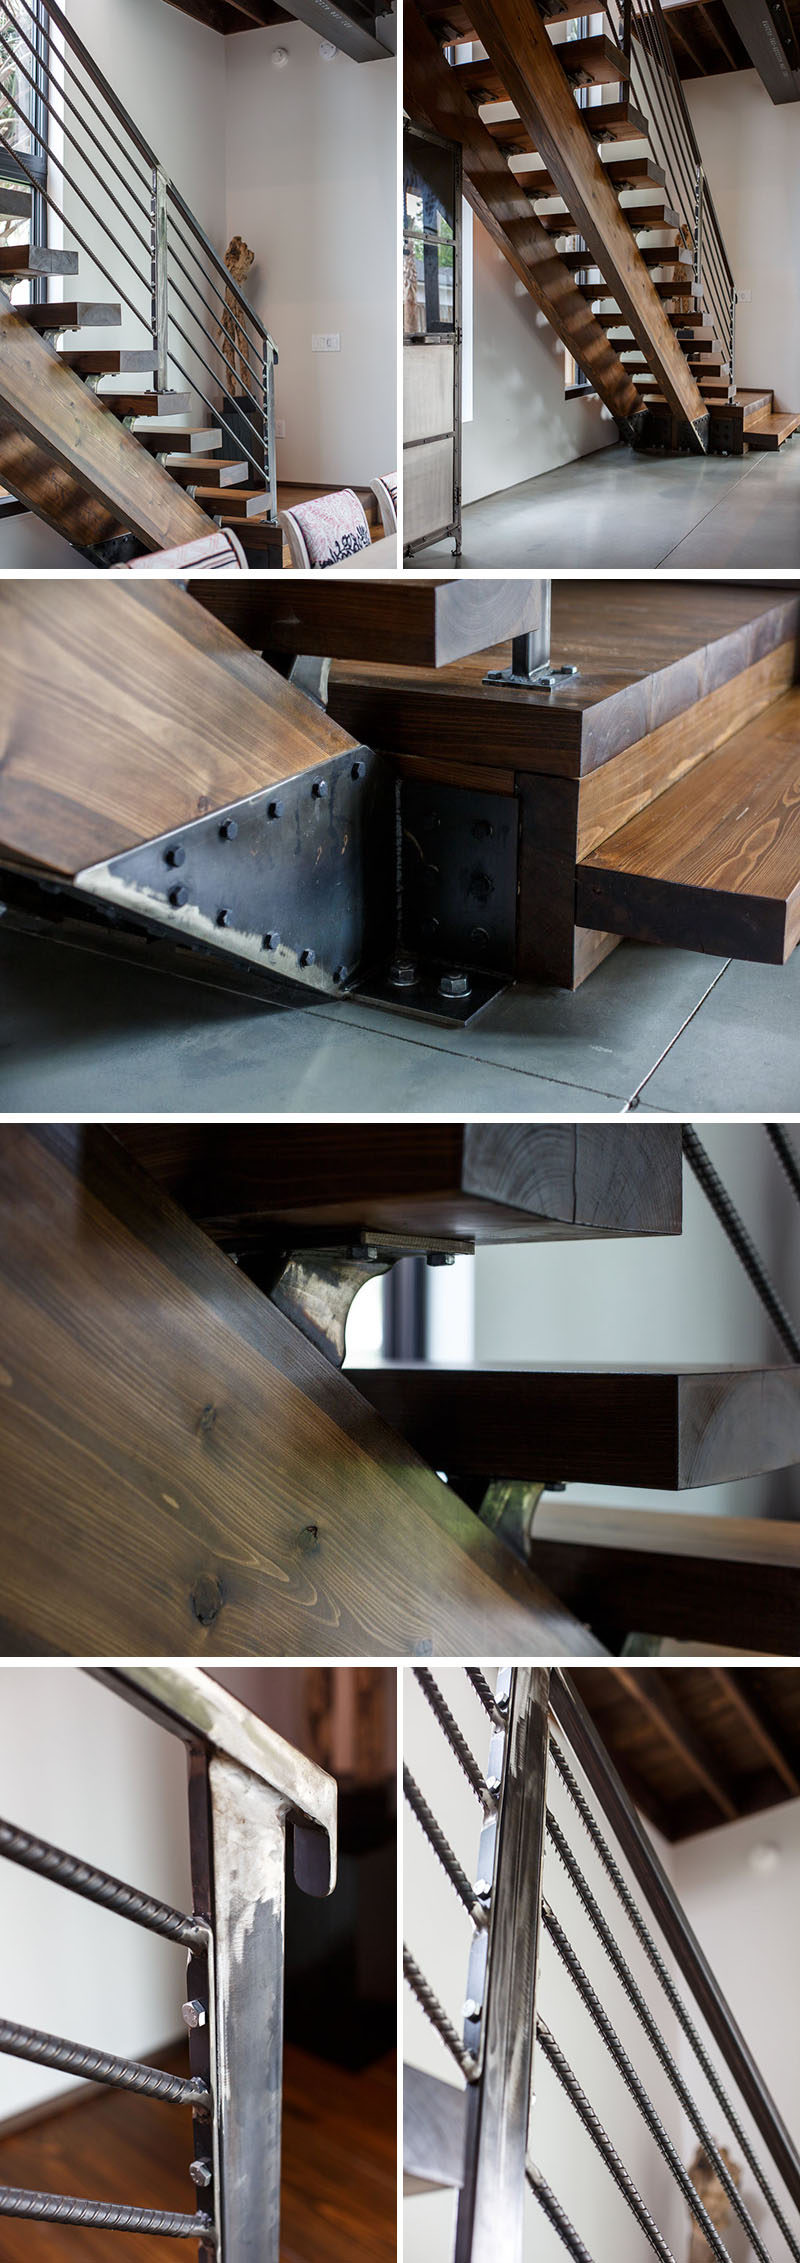 Wood stairs have been combined with metal accents and handrails in this modern house to bring an industrial touch to the interior. #Industrial #Wood #Steel #Stairs #Staircase #InteriorDesign